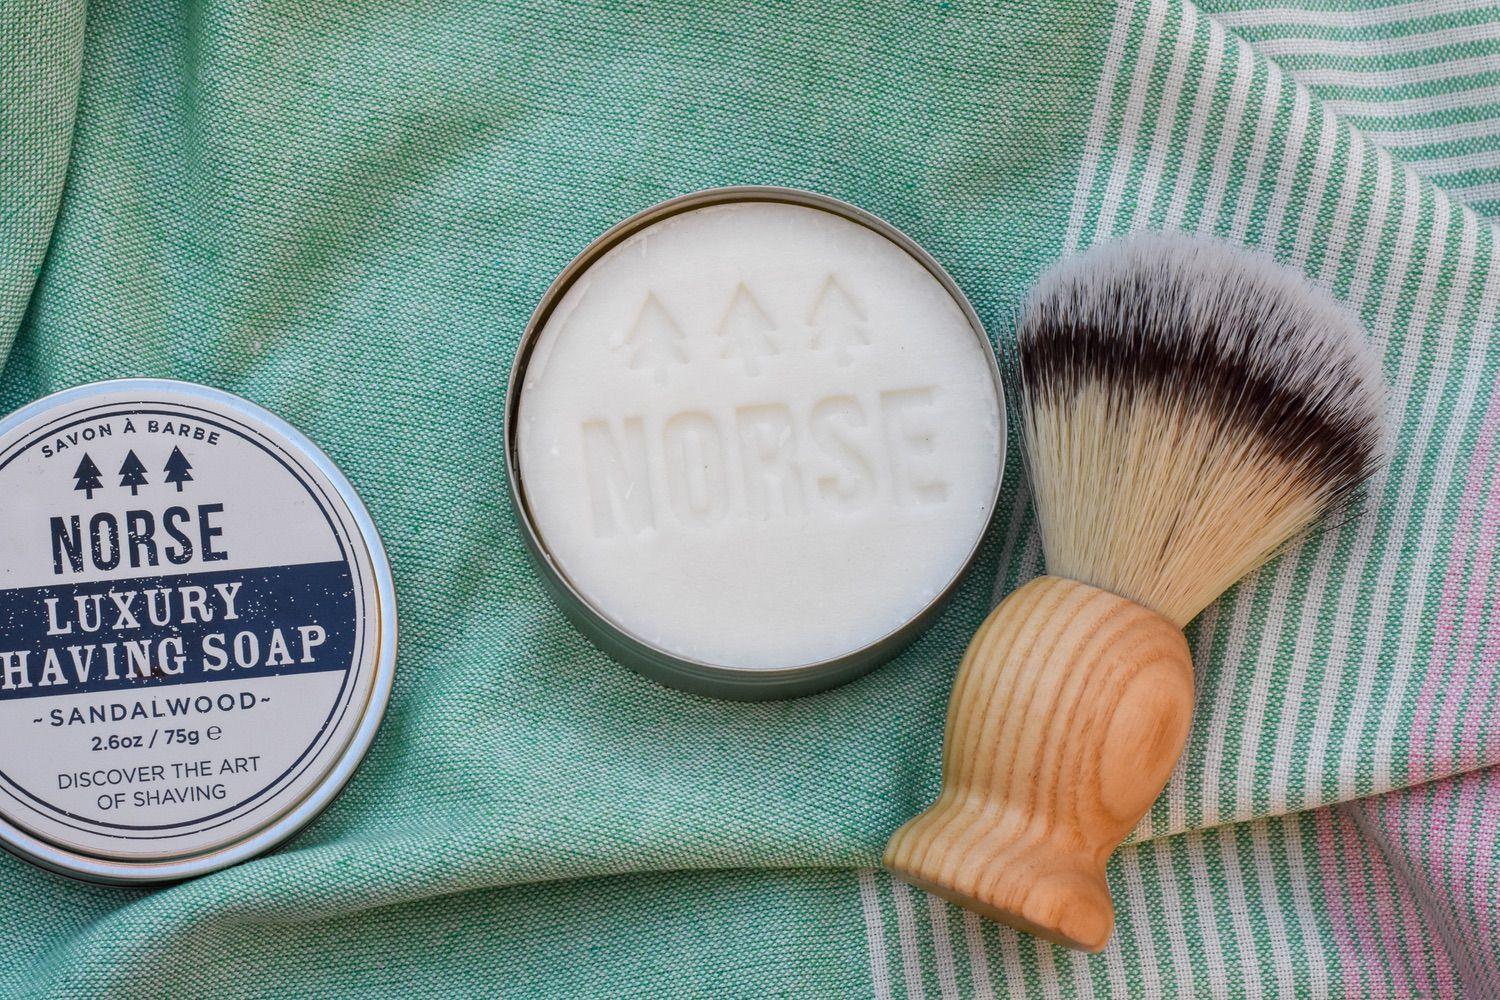 norse - Norse offer a range of natural, male-focussed grooming products.They make beautiful stainless steel safety razors, which I have heard are a joy to use, and not as scary as safety razors can initially feel.In addition, Norse make a range of natural shaving soaps, that give a perfect creamy foam, as well as vegan-friendly brushes (not pictured).And if shaving isn't your thing, have a look at the products for keeping beards looking beautiful - oils, balms and waxes.